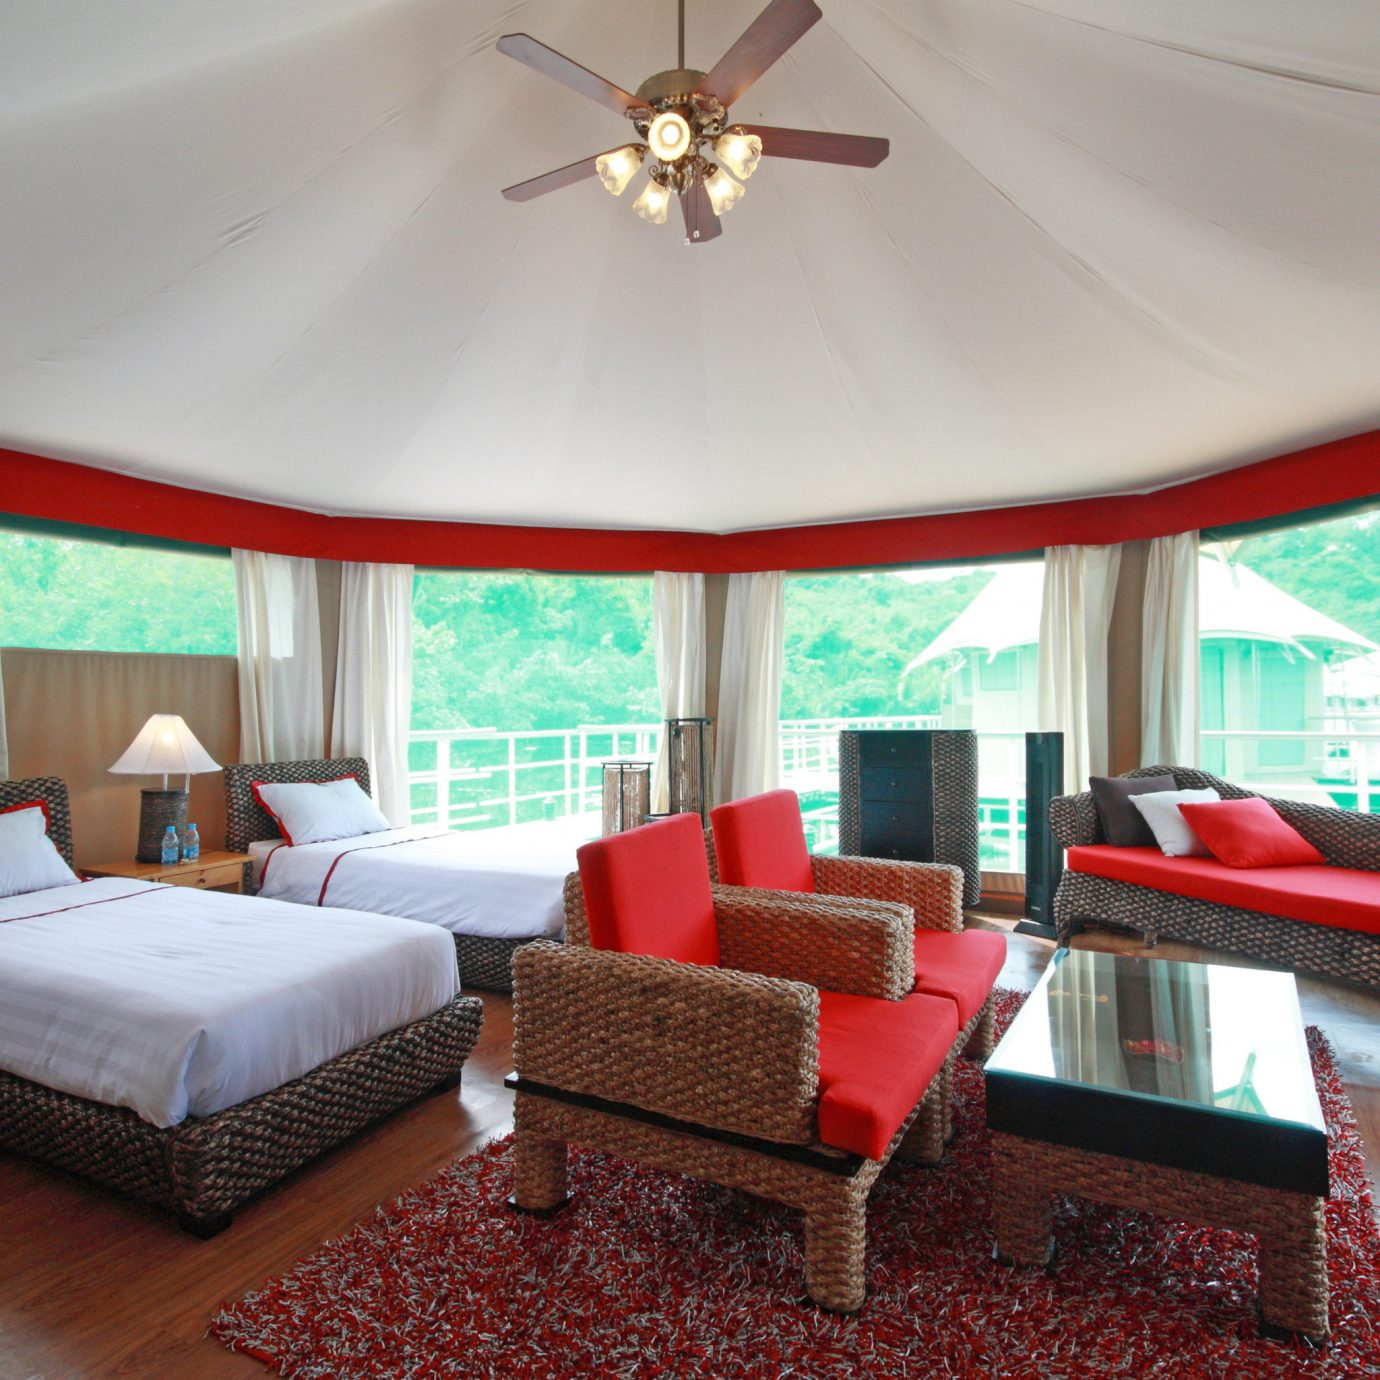 Adventure Bedroom Natural wonders Parks Romance Rustic Scenic views Wellness property red living room Suite Villa Resort home cottage